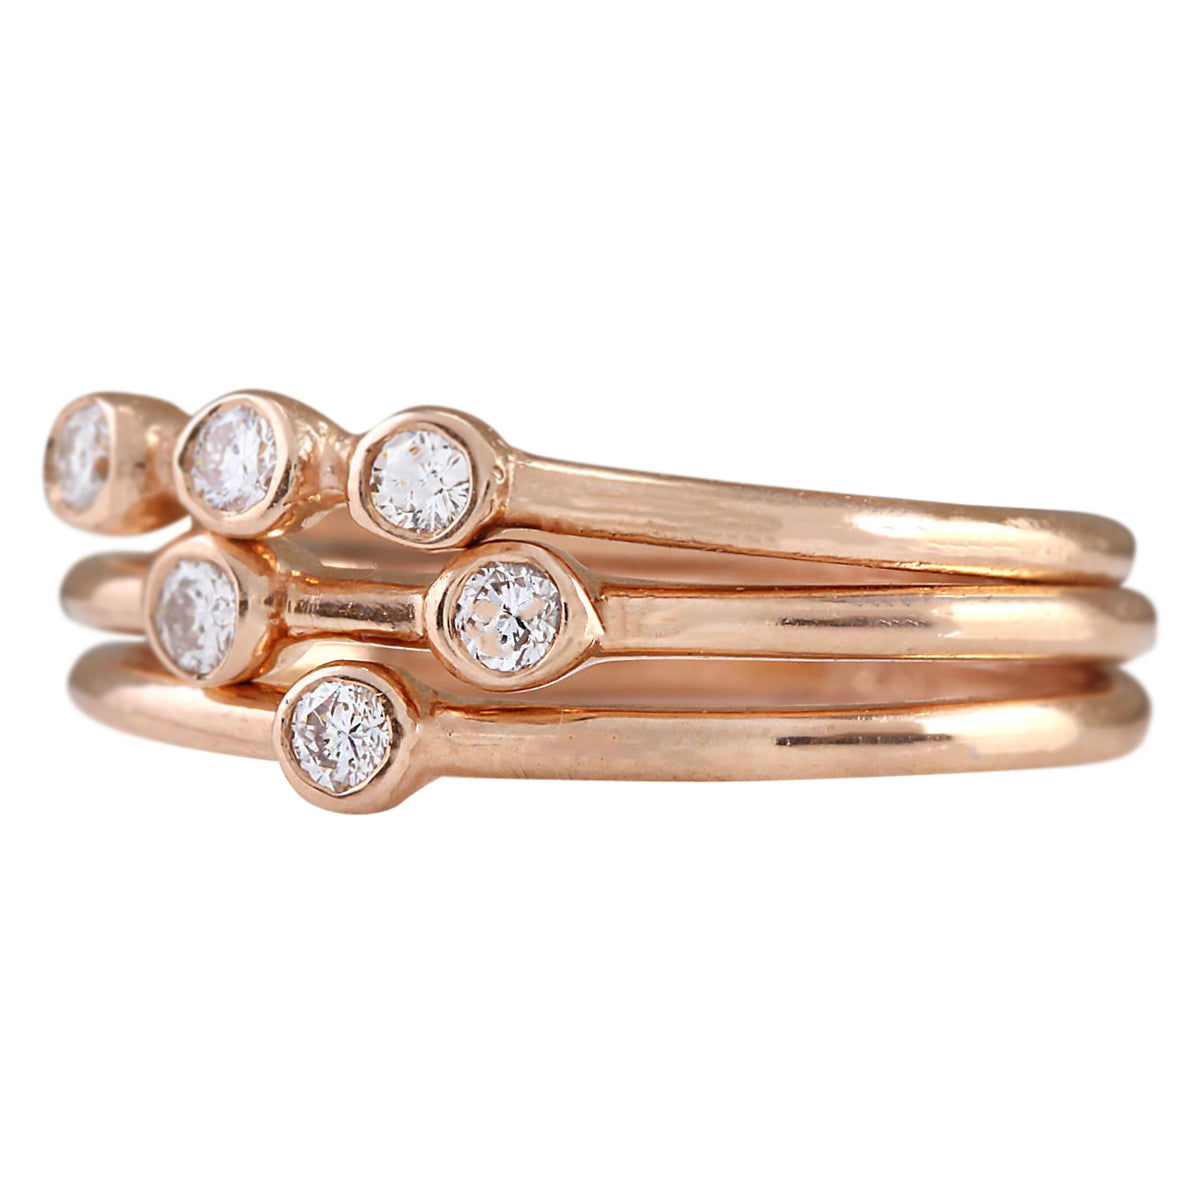 0.24 Carat Natural Diamond 14K Rose Gold Ring